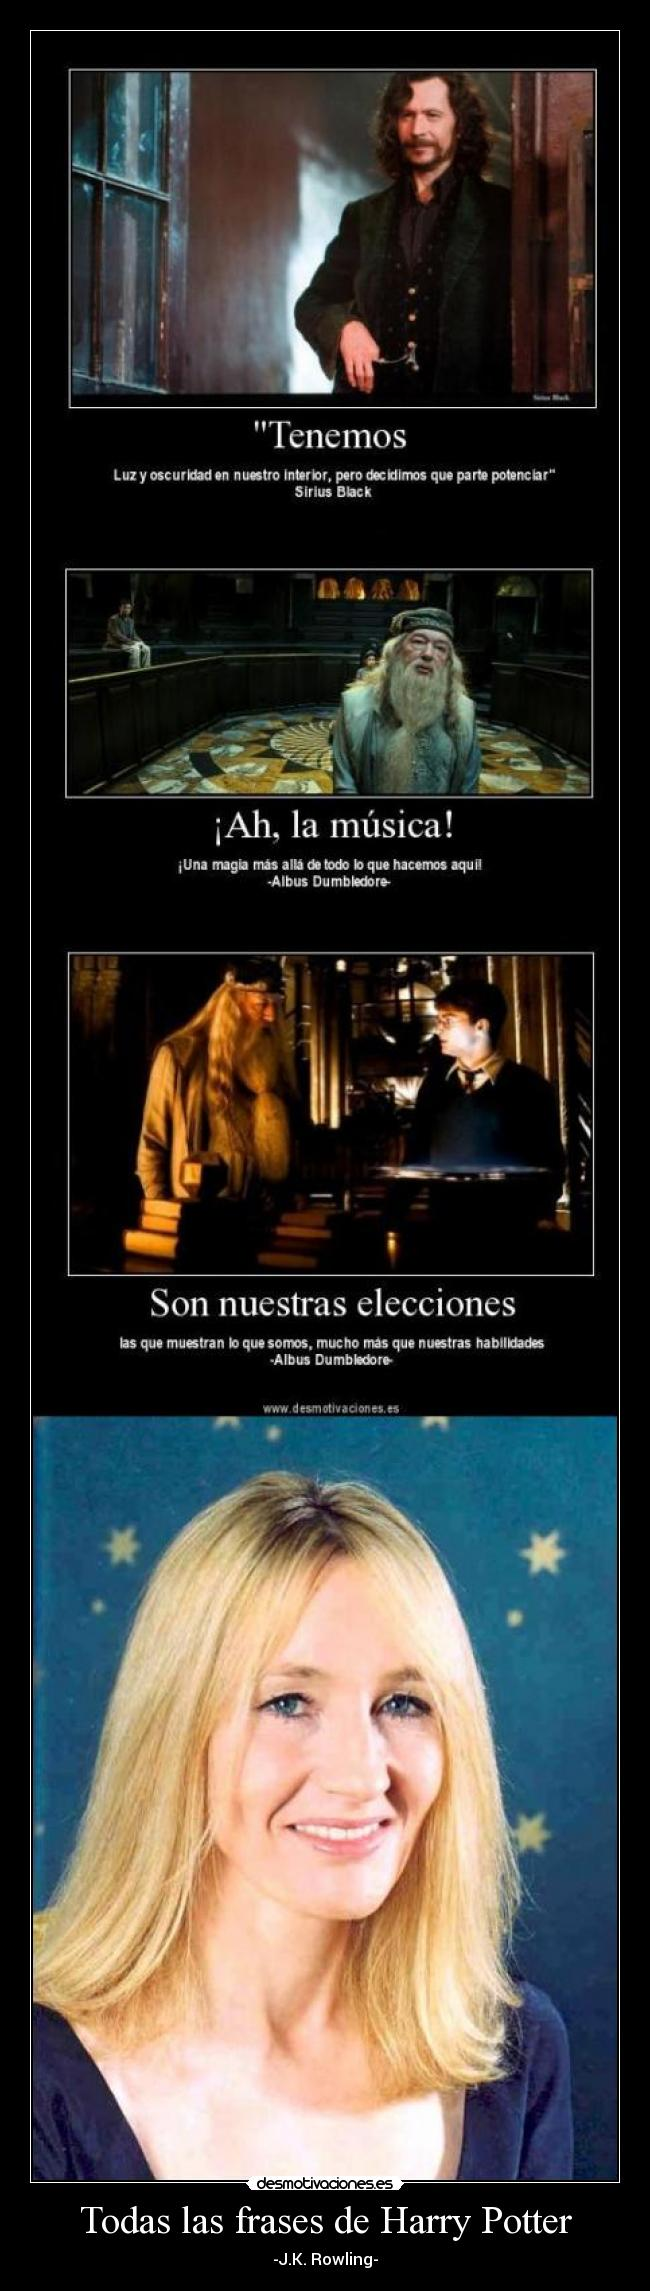 Todas las frases de Harry Potter -